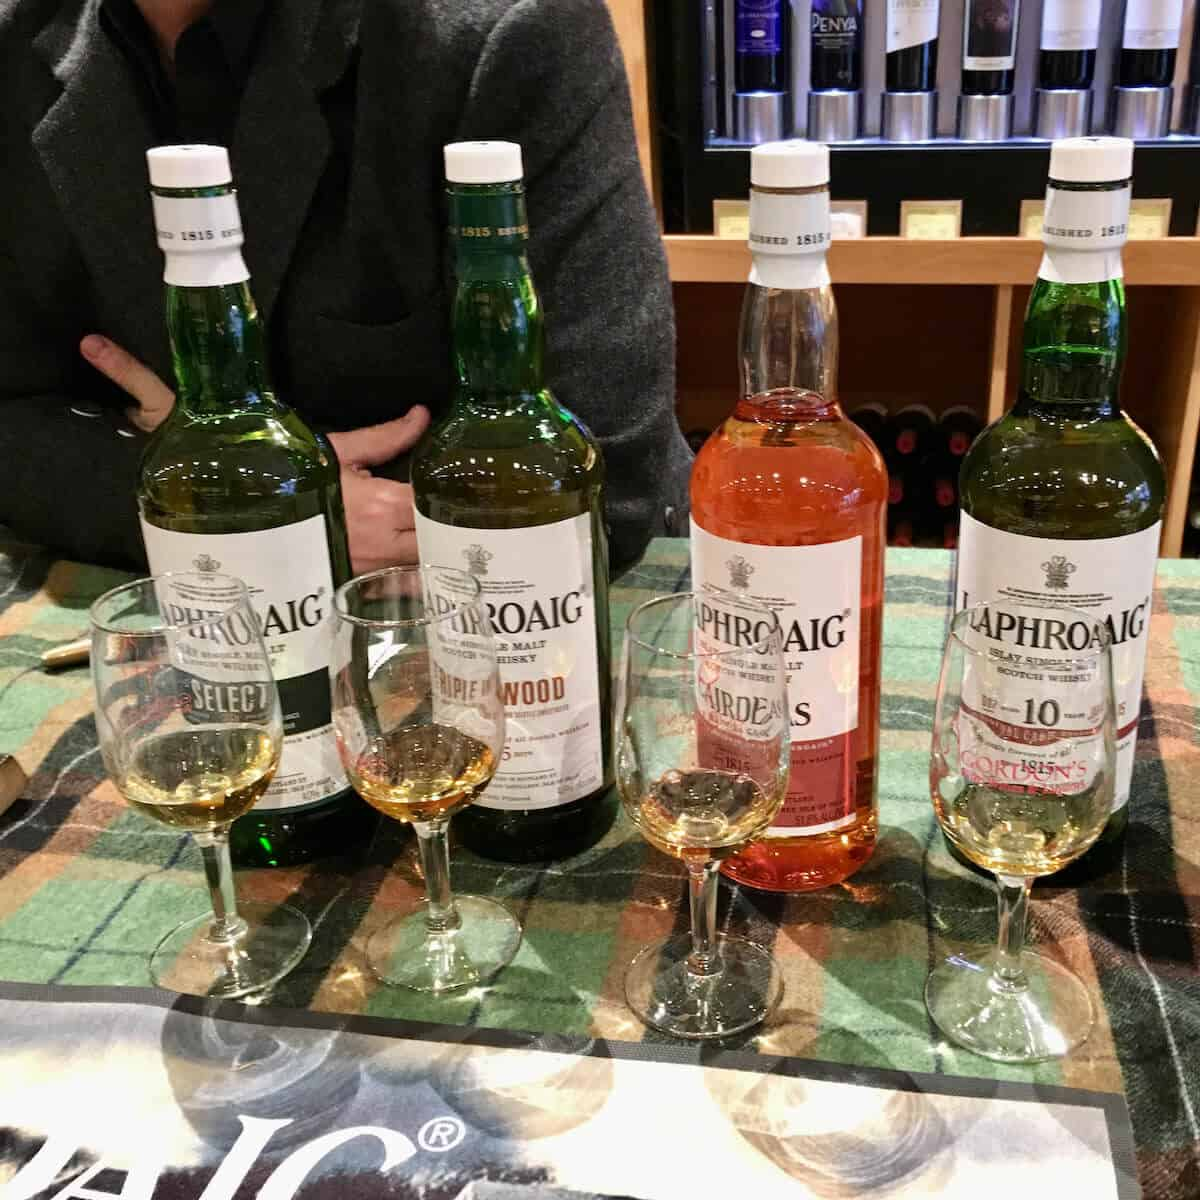 Lineup of Laphroaig scotch whisky poured into glasses with bottles behind on a green checked cloth.